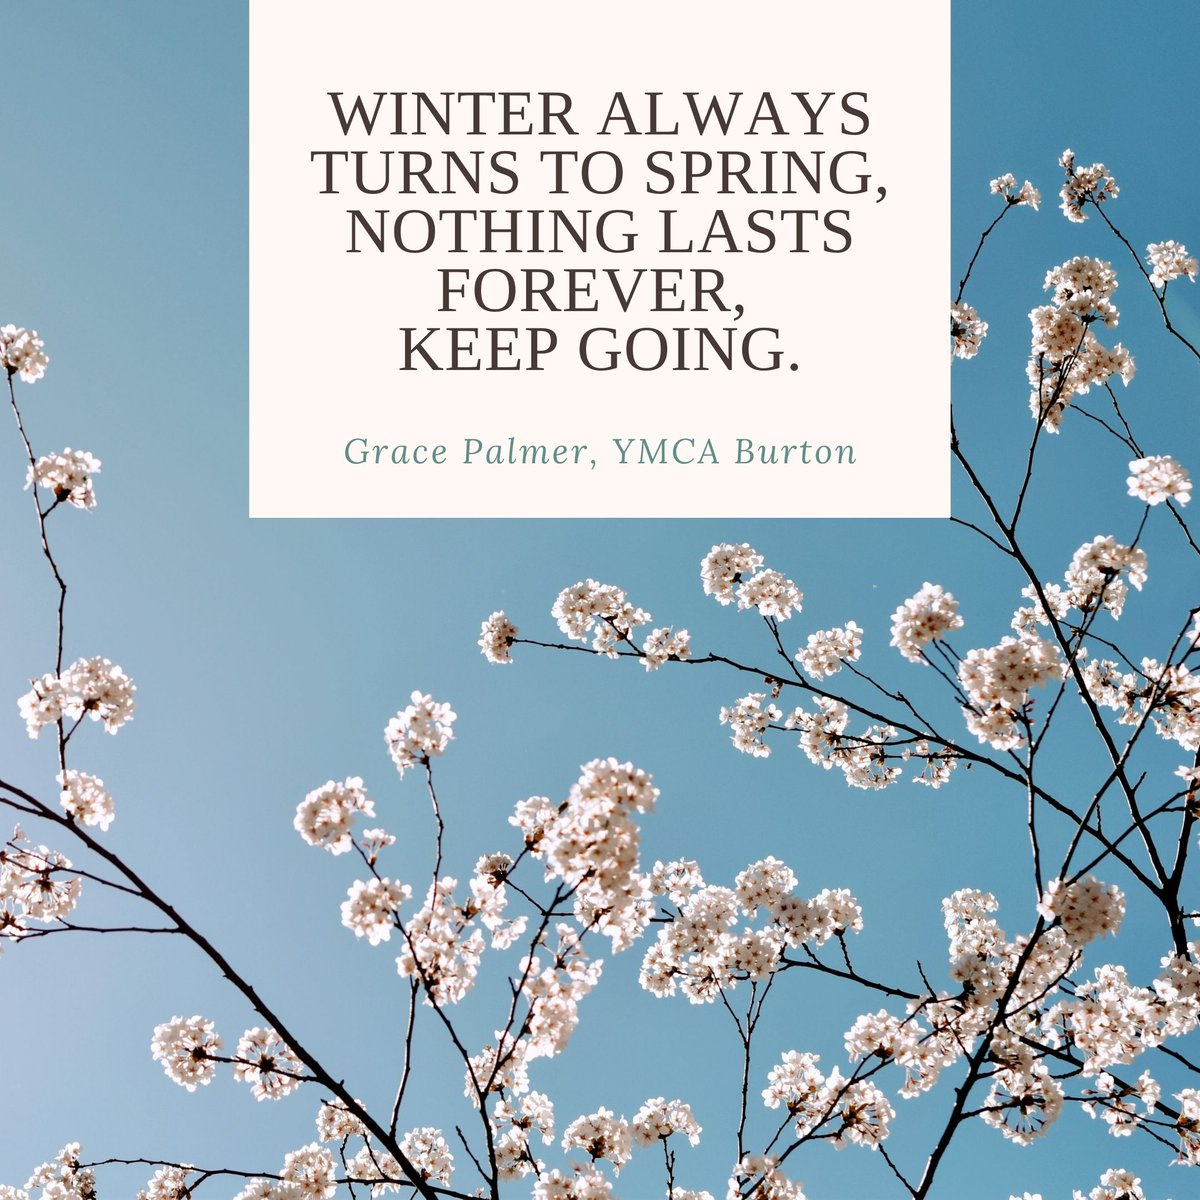 """Our Chaplain Grace always knows the right words to say....   """"Winter always turns to Spring, nothing lasts forever, keep going""""  #Charity #chaplaincy #ThursdayThoughts #thursdaymotivation"""